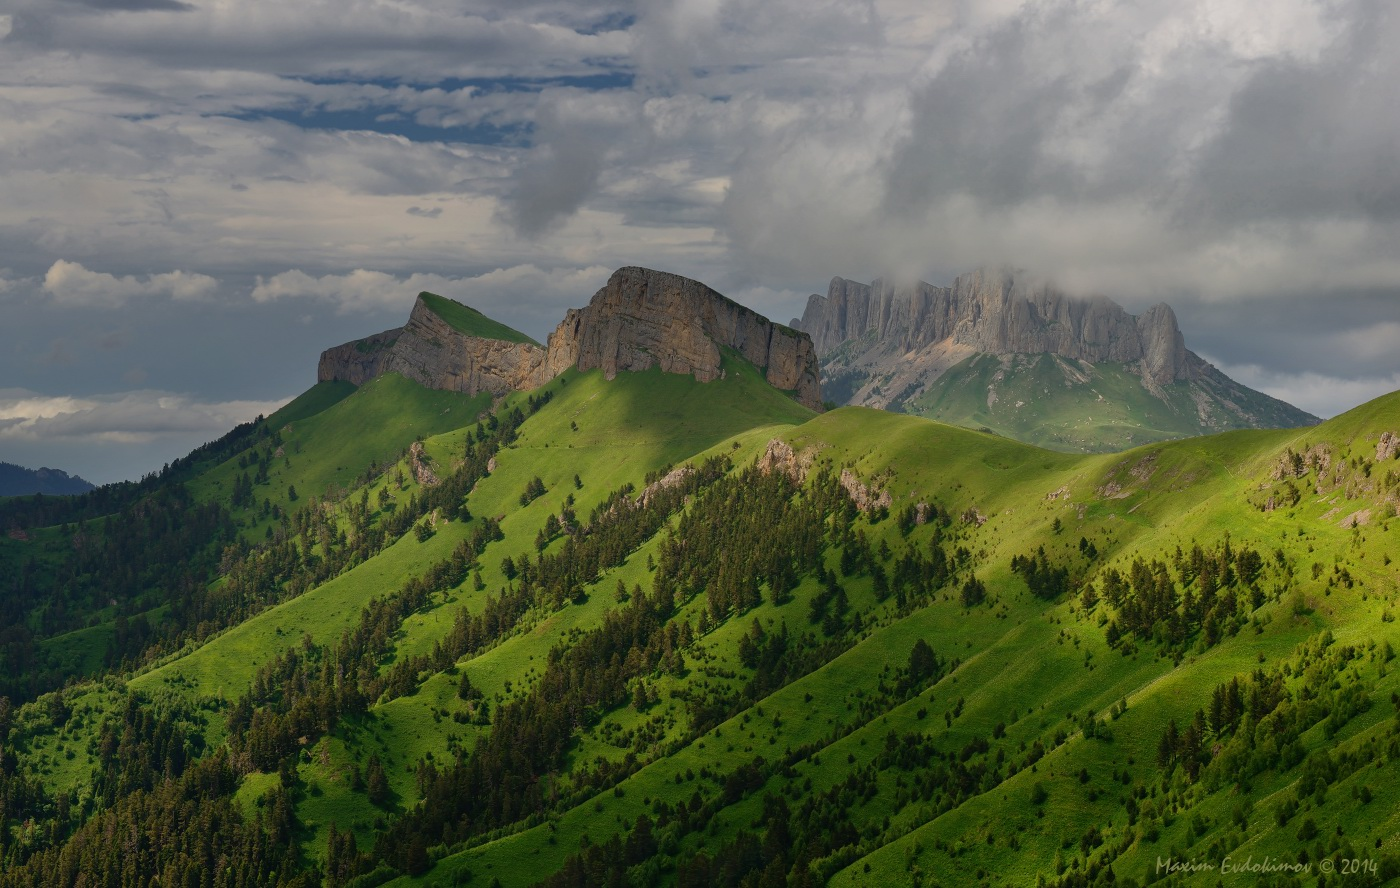 Adygea mountains in the Caucauses